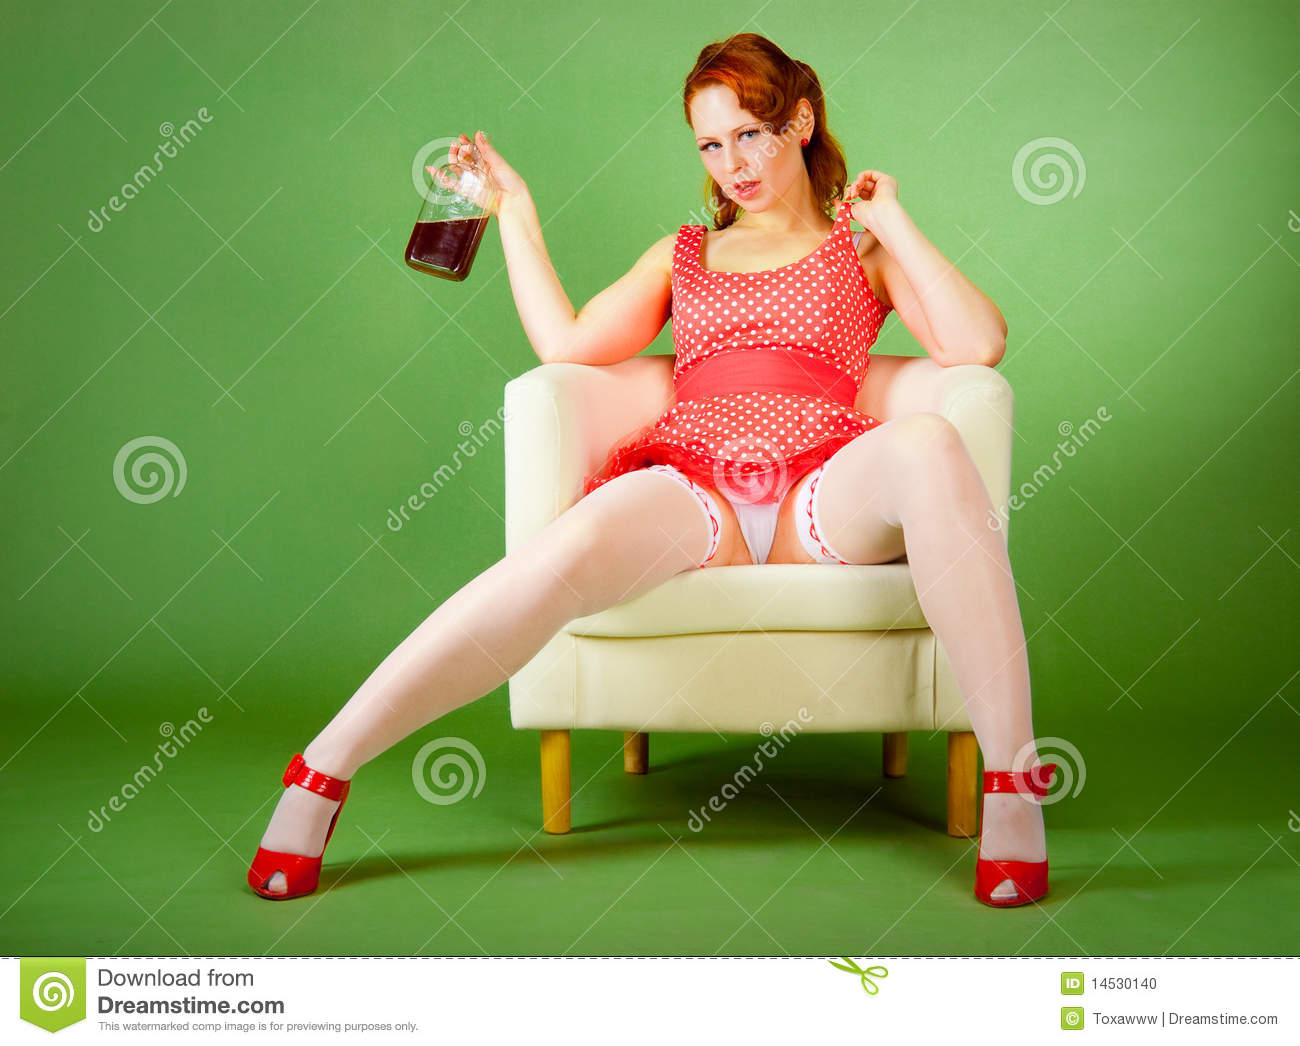 Pin-up Style Girl Stock Photo - Image: 14530140